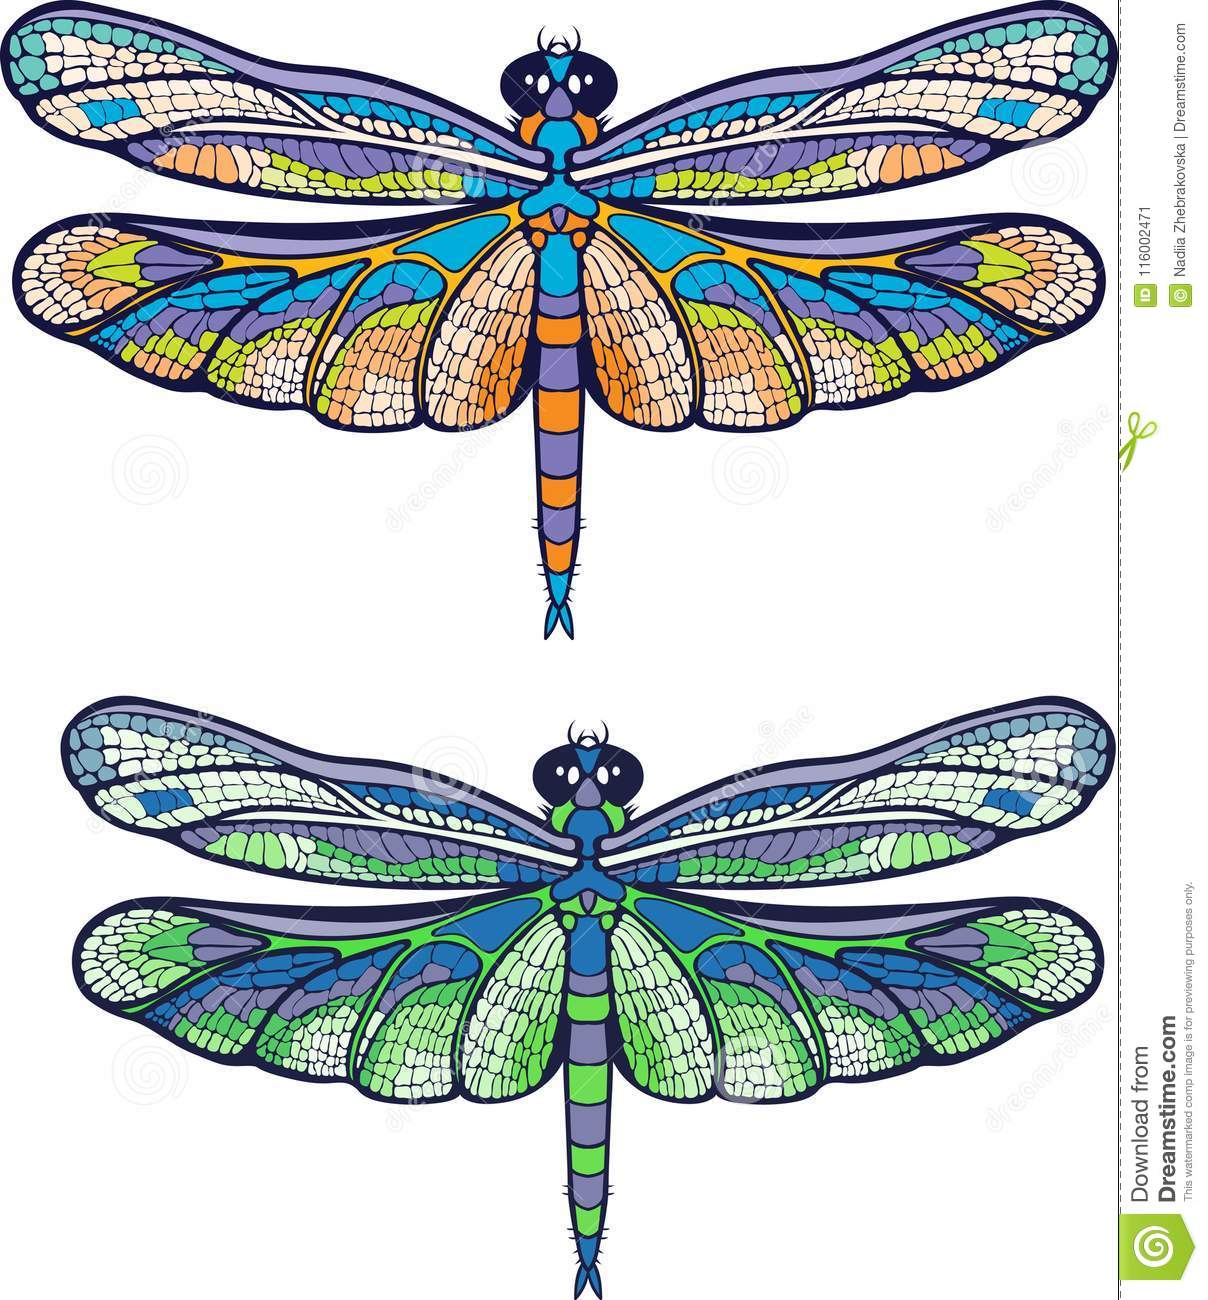 Colourful dragonfly.